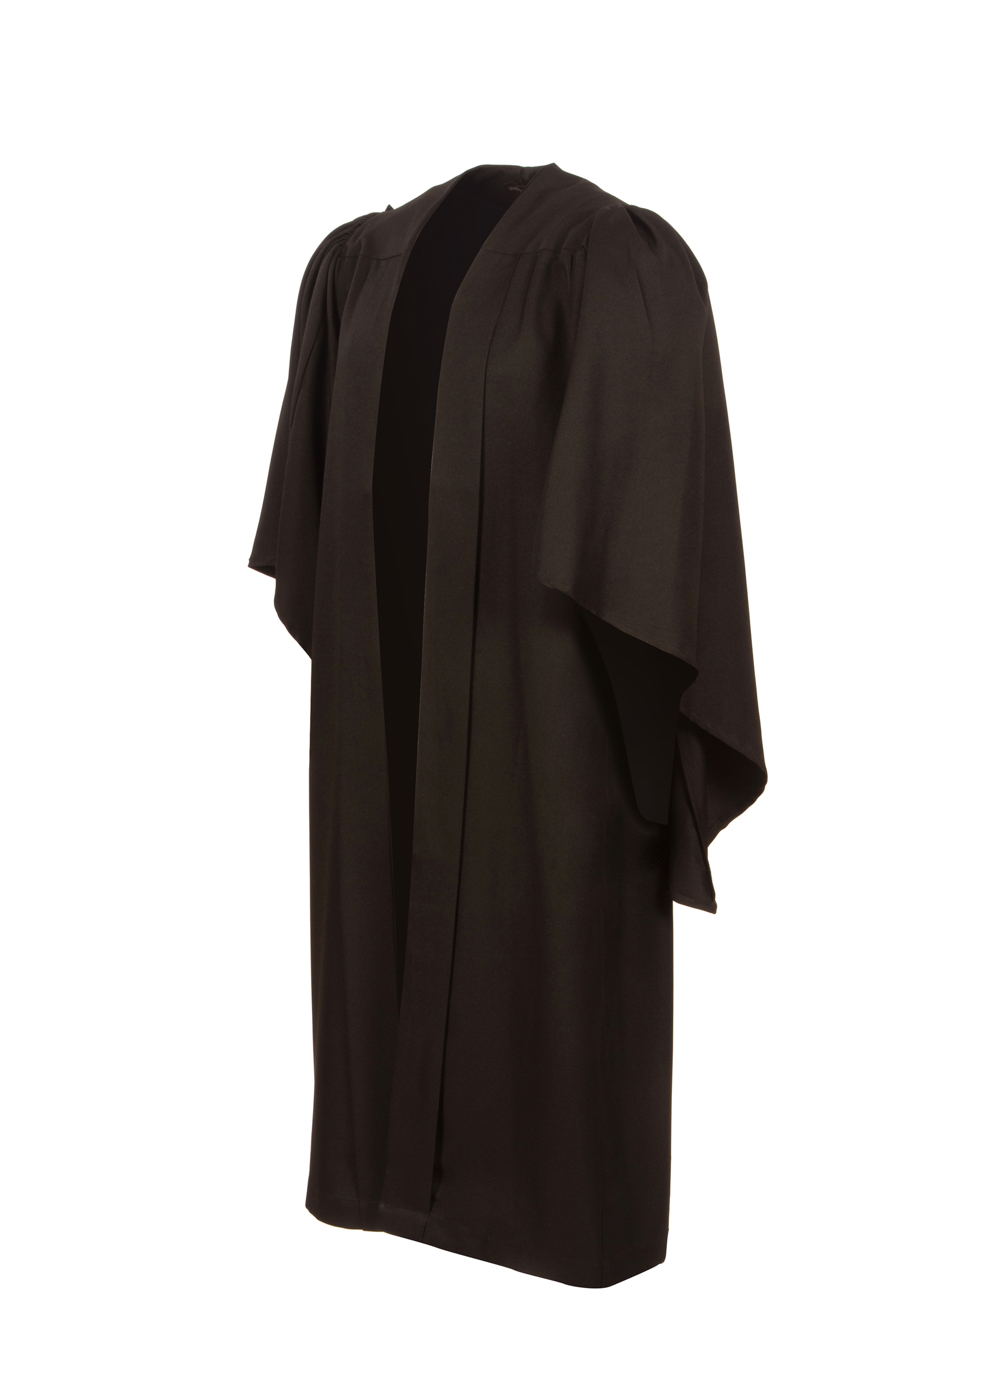 Academic Gown Bachelor with Graduation Attire EU